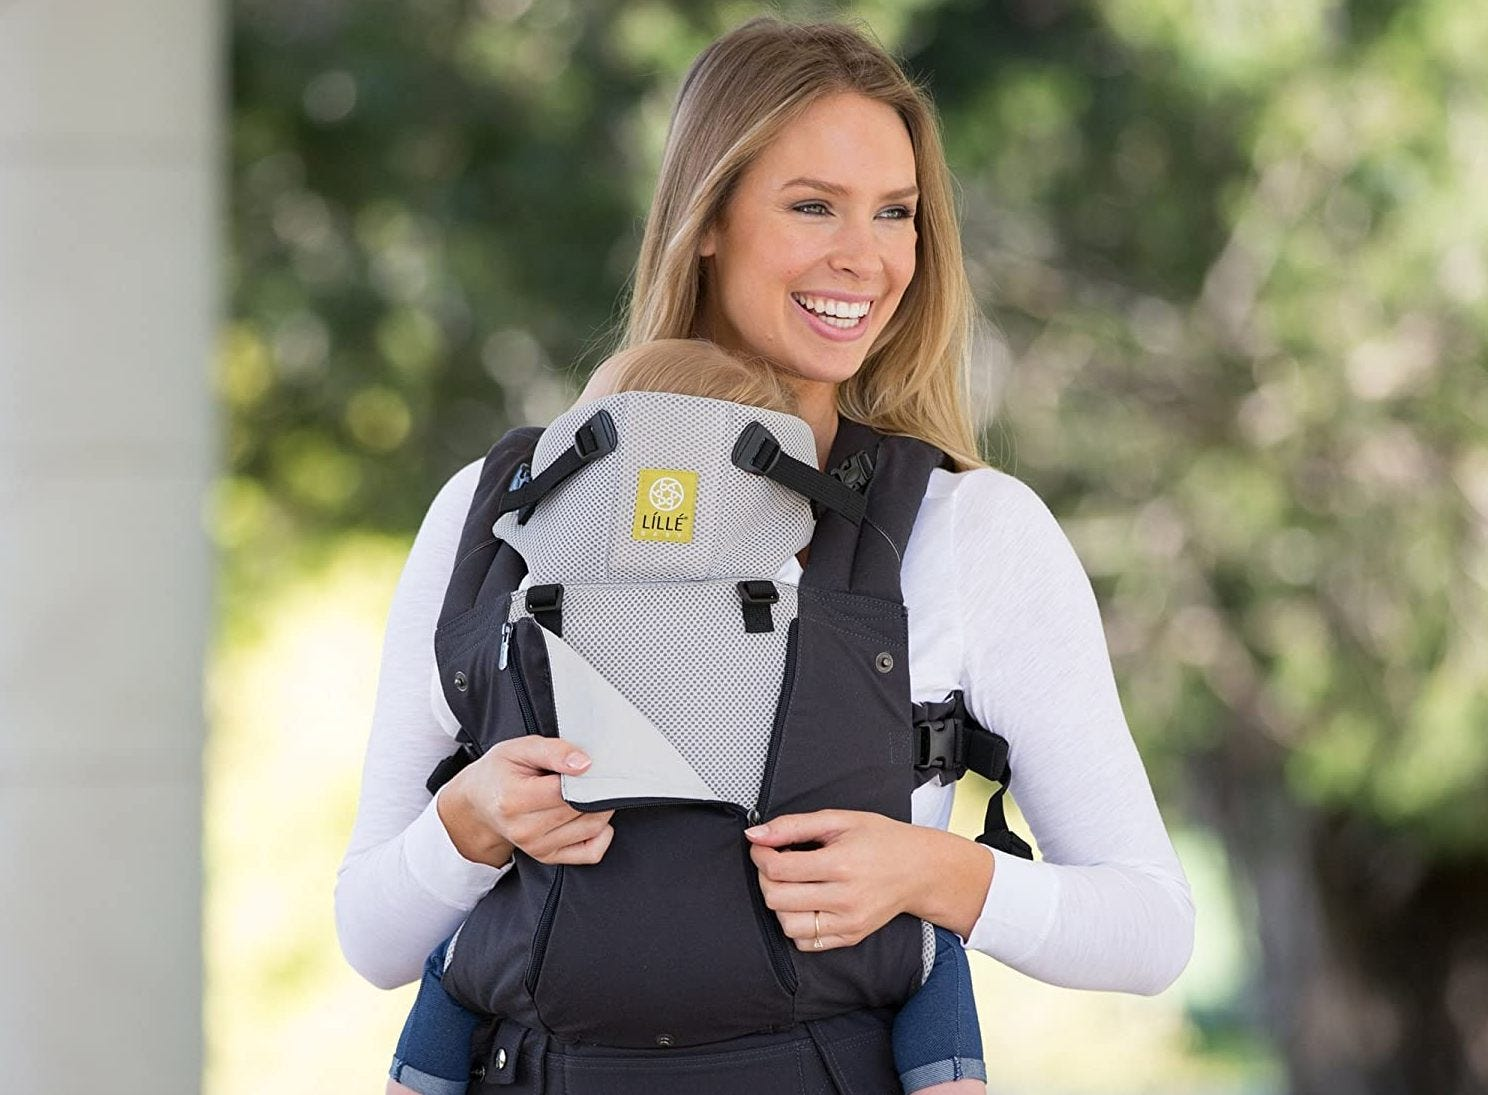 A mom carrying a baby in the LÍLLÉbaby 6-in-1 Carrier.